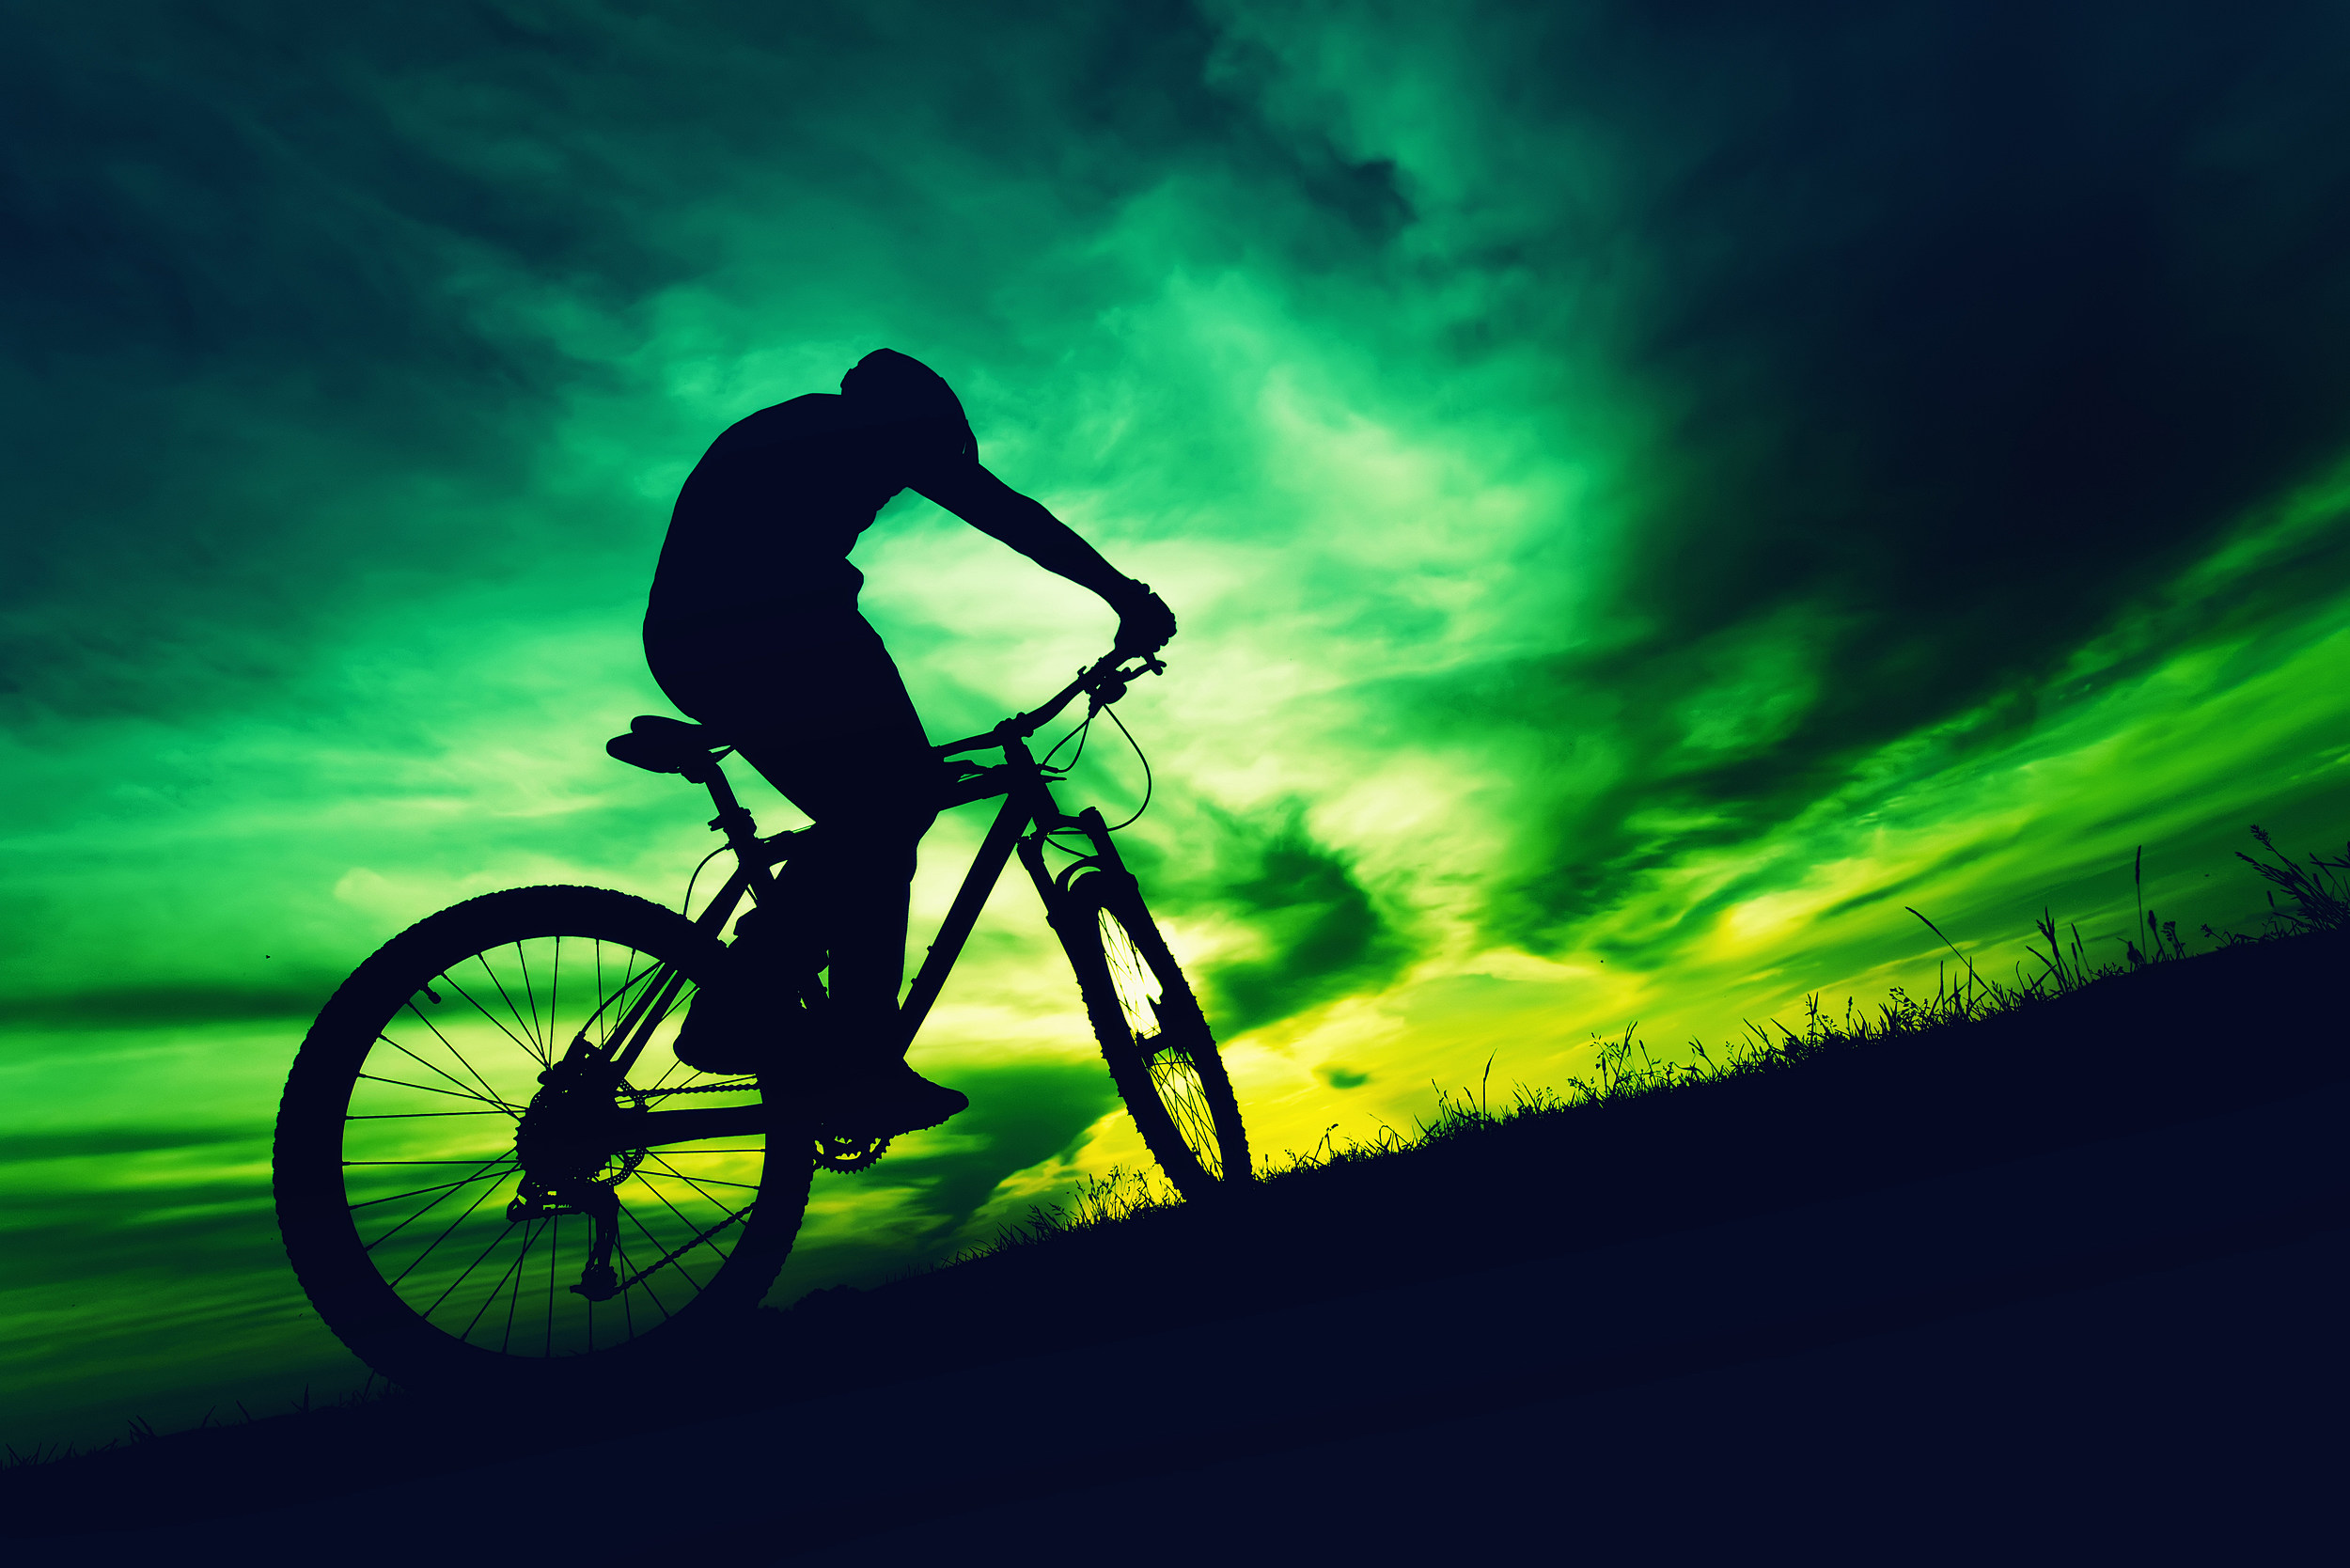 silhouette of a bicyclist against colorful sky at sundown